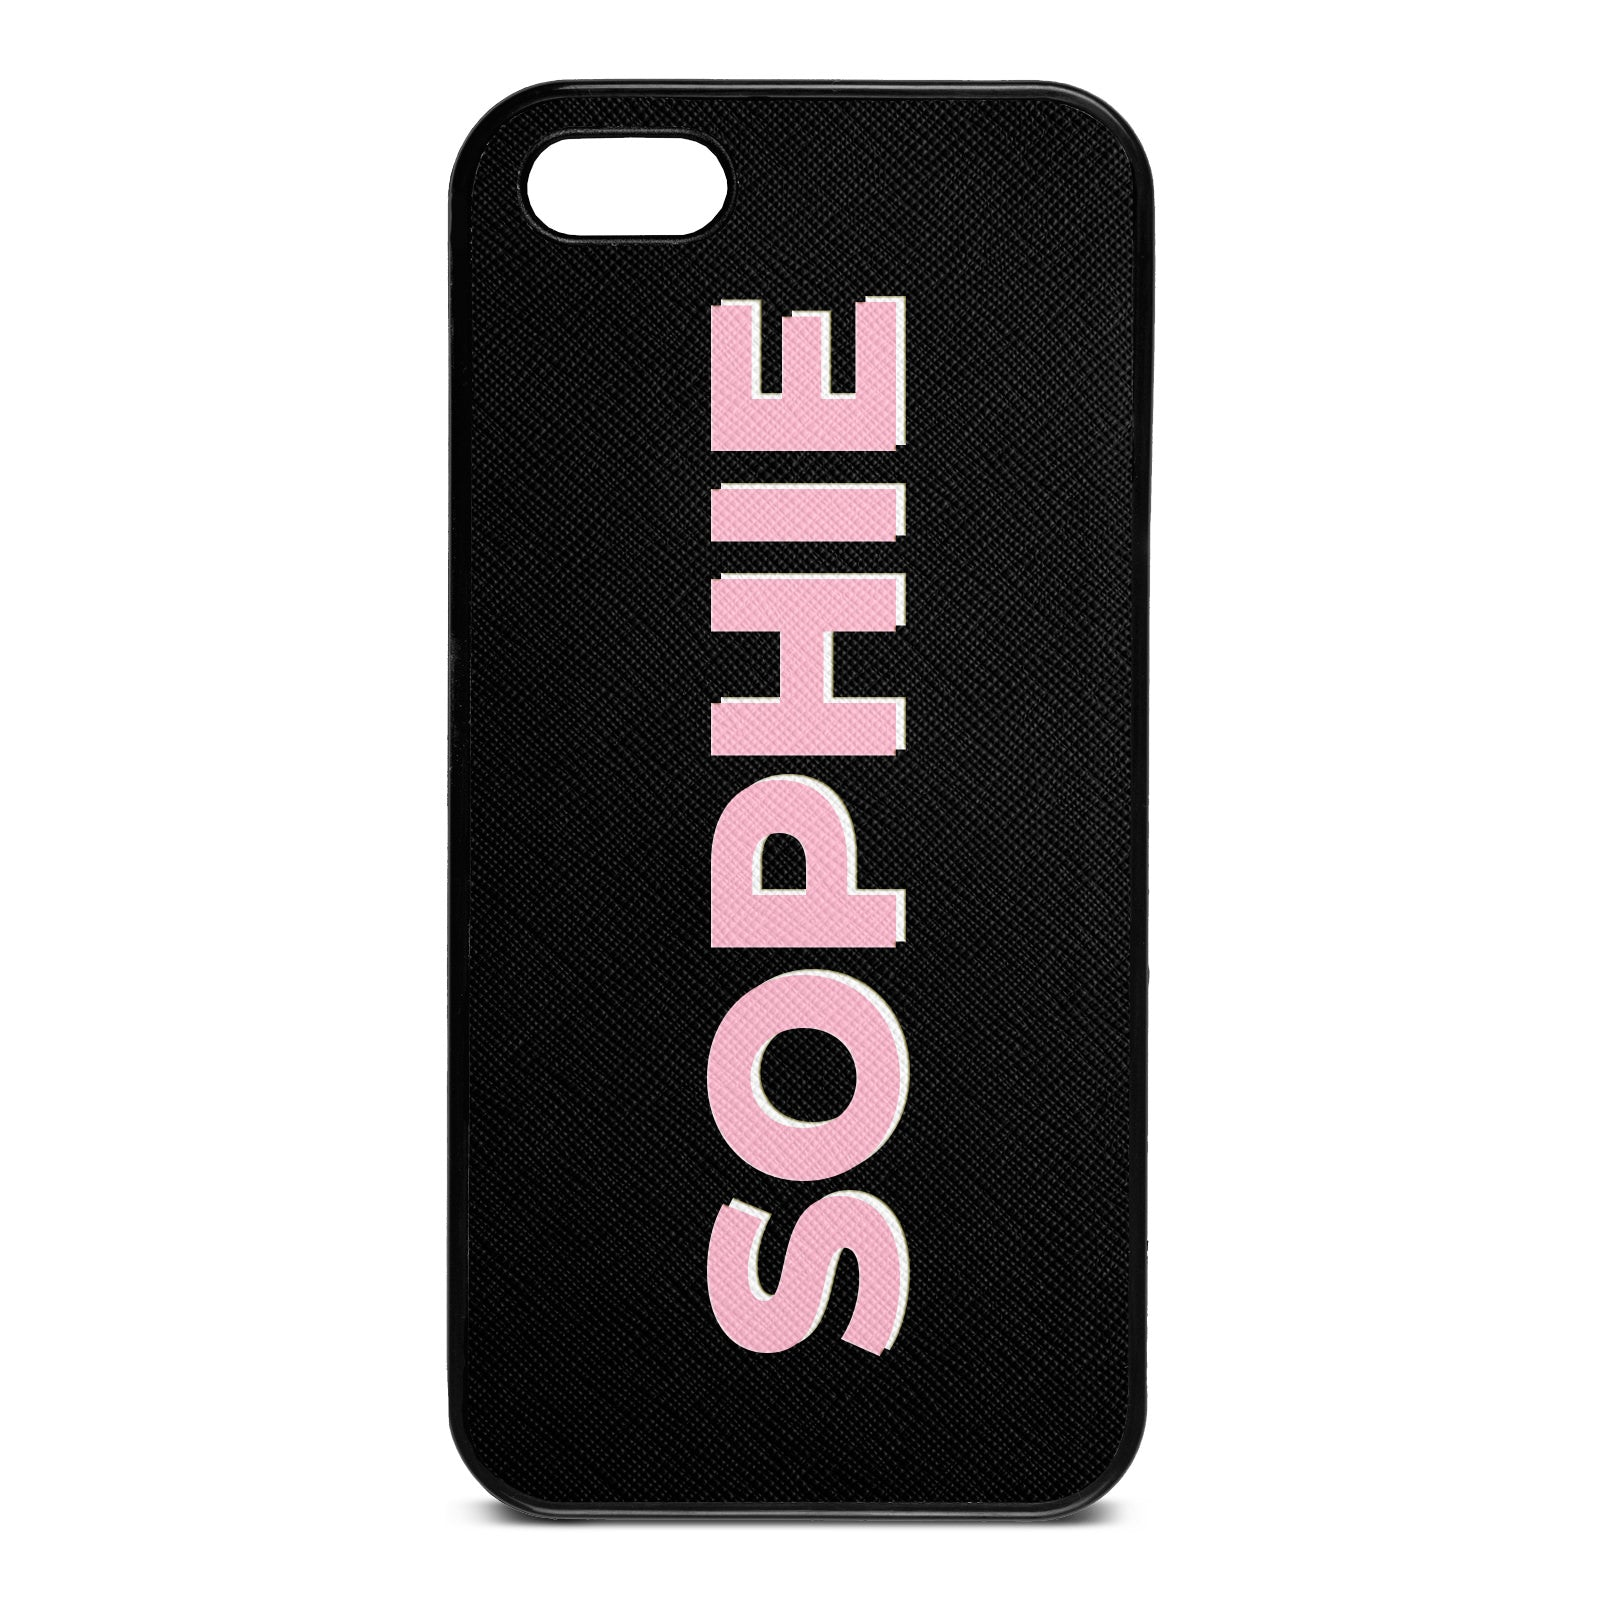 iPhone 5 Drop Shadow Black Leather Case